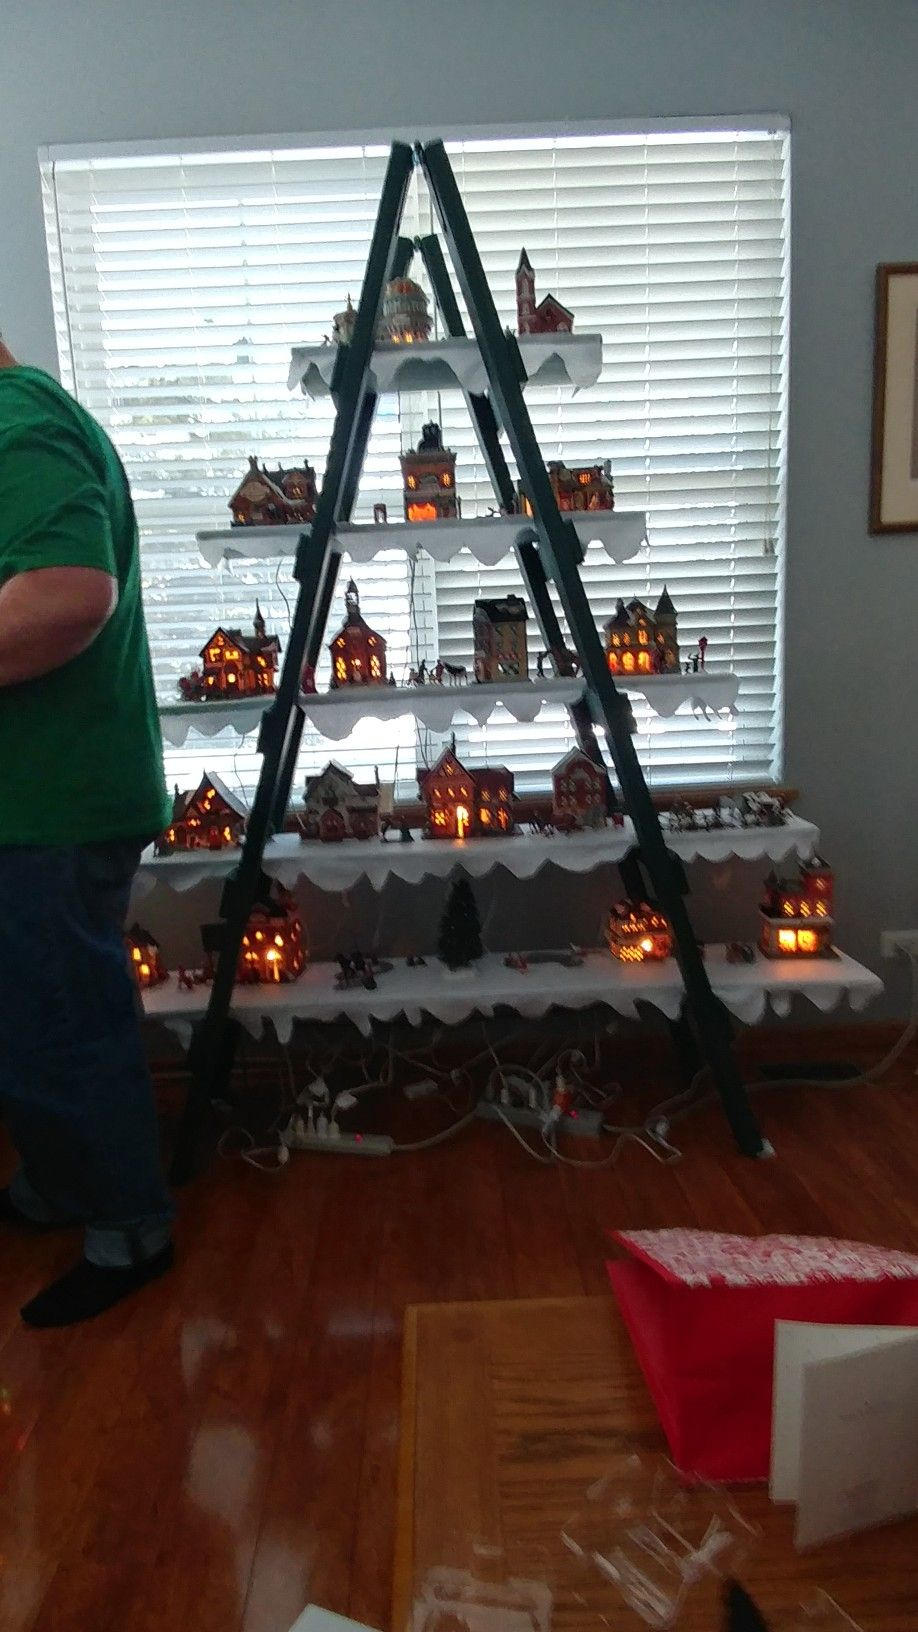 Here S Our Christmas Village Ladder Tree 7 Tall Not Too Difficult To Make Boards Have Felt On Top Rustic Christmas Christmas Village Christmas And New Year